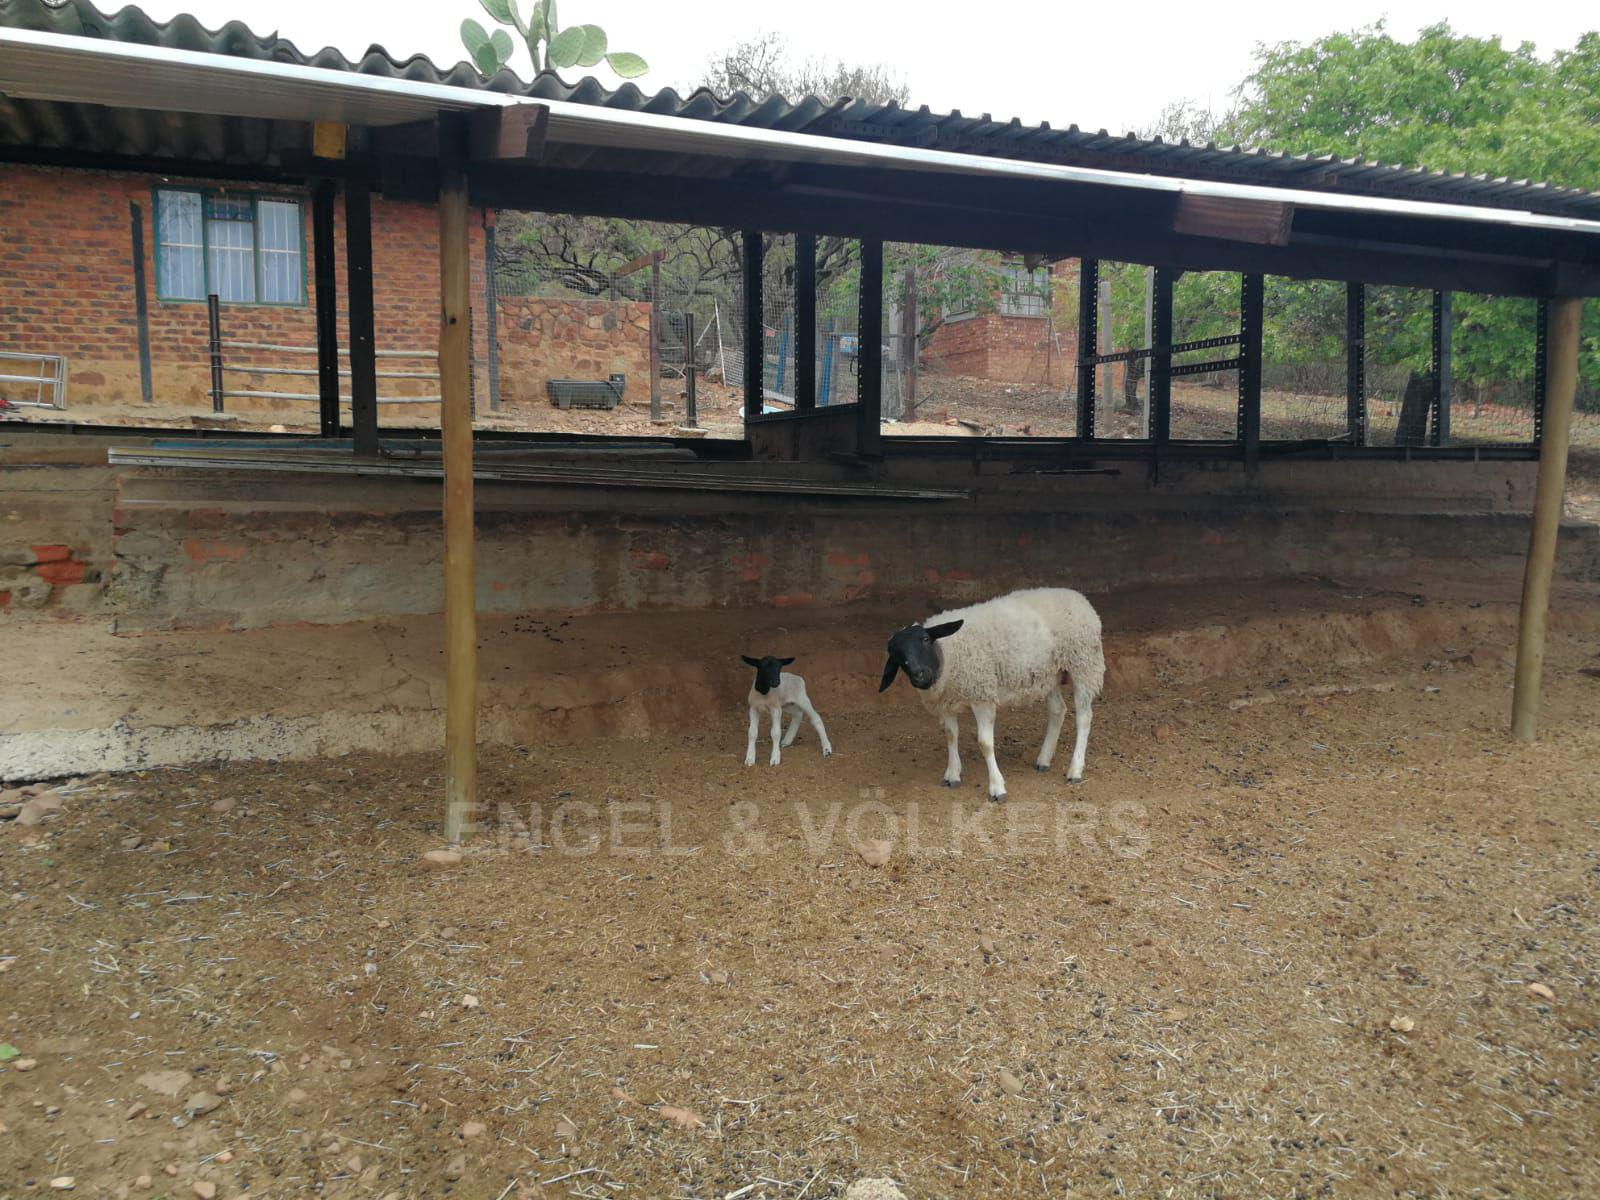 Land in Hartbeespoort Dam Area - Feeding pens for animals